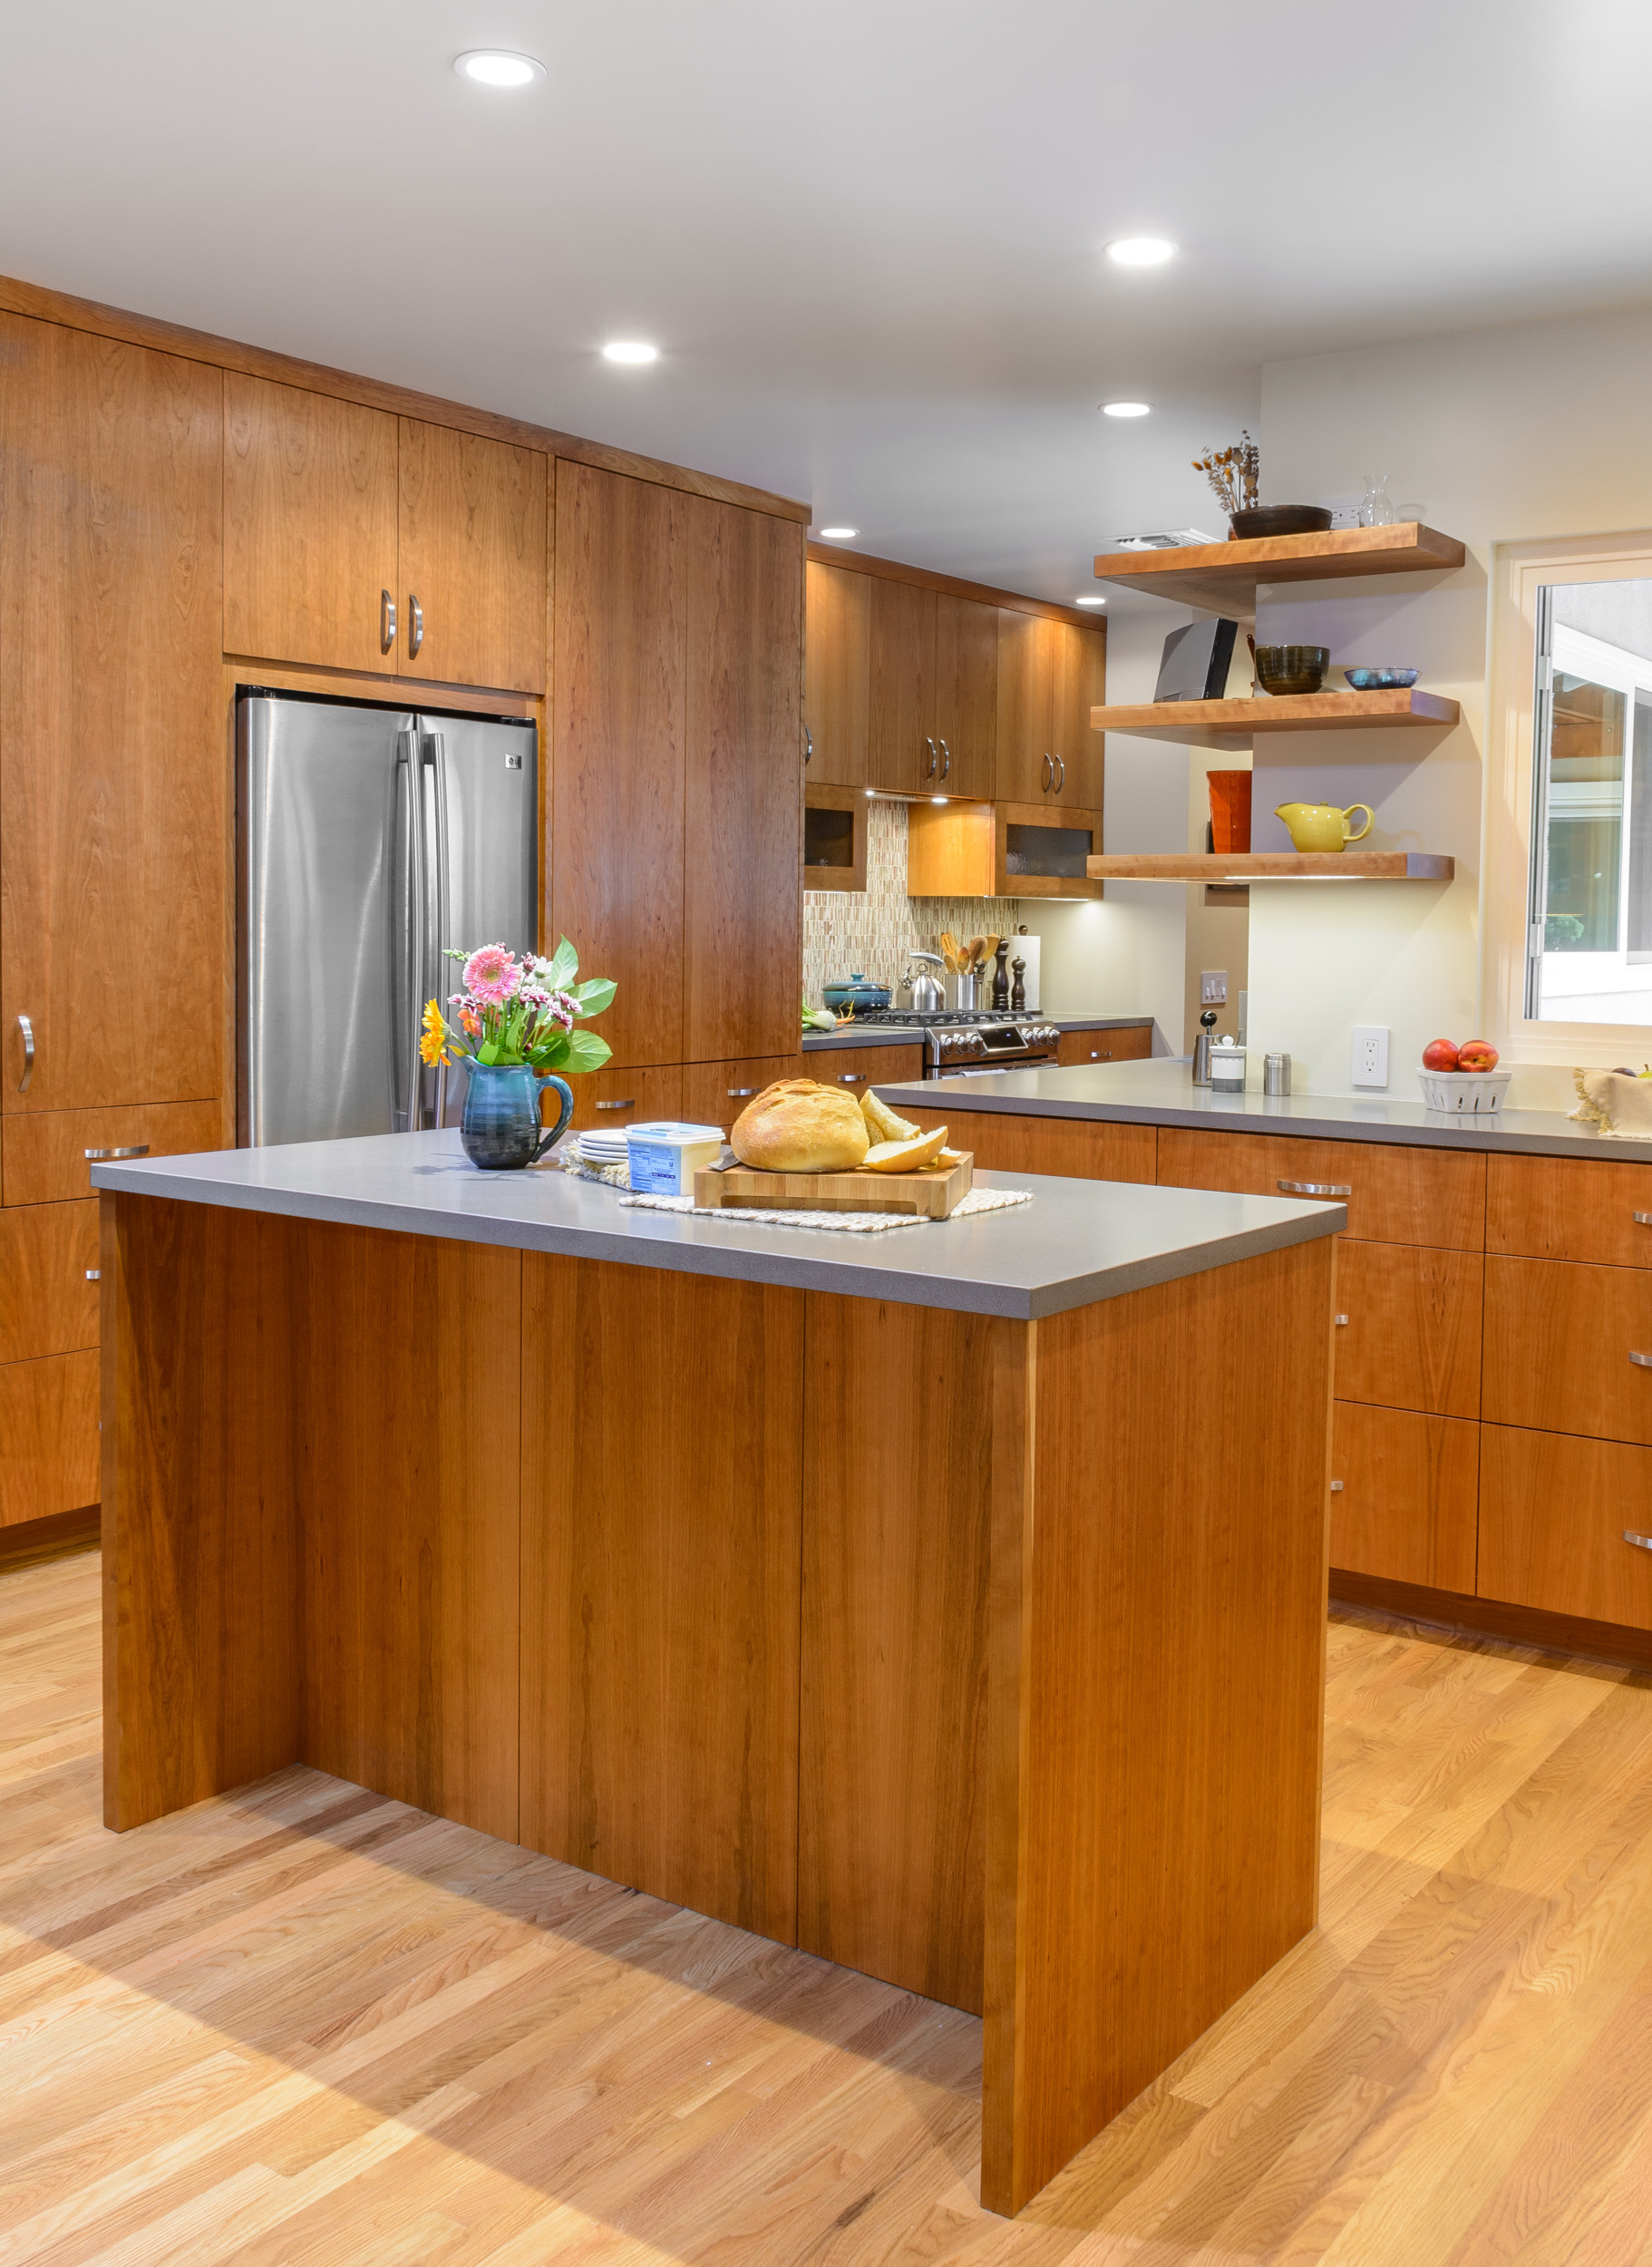 The kitchen island, custom-built cherry cabinets with quartz countertops, and floating shelves provide warmth and an easy flow to this contemporary kitchen